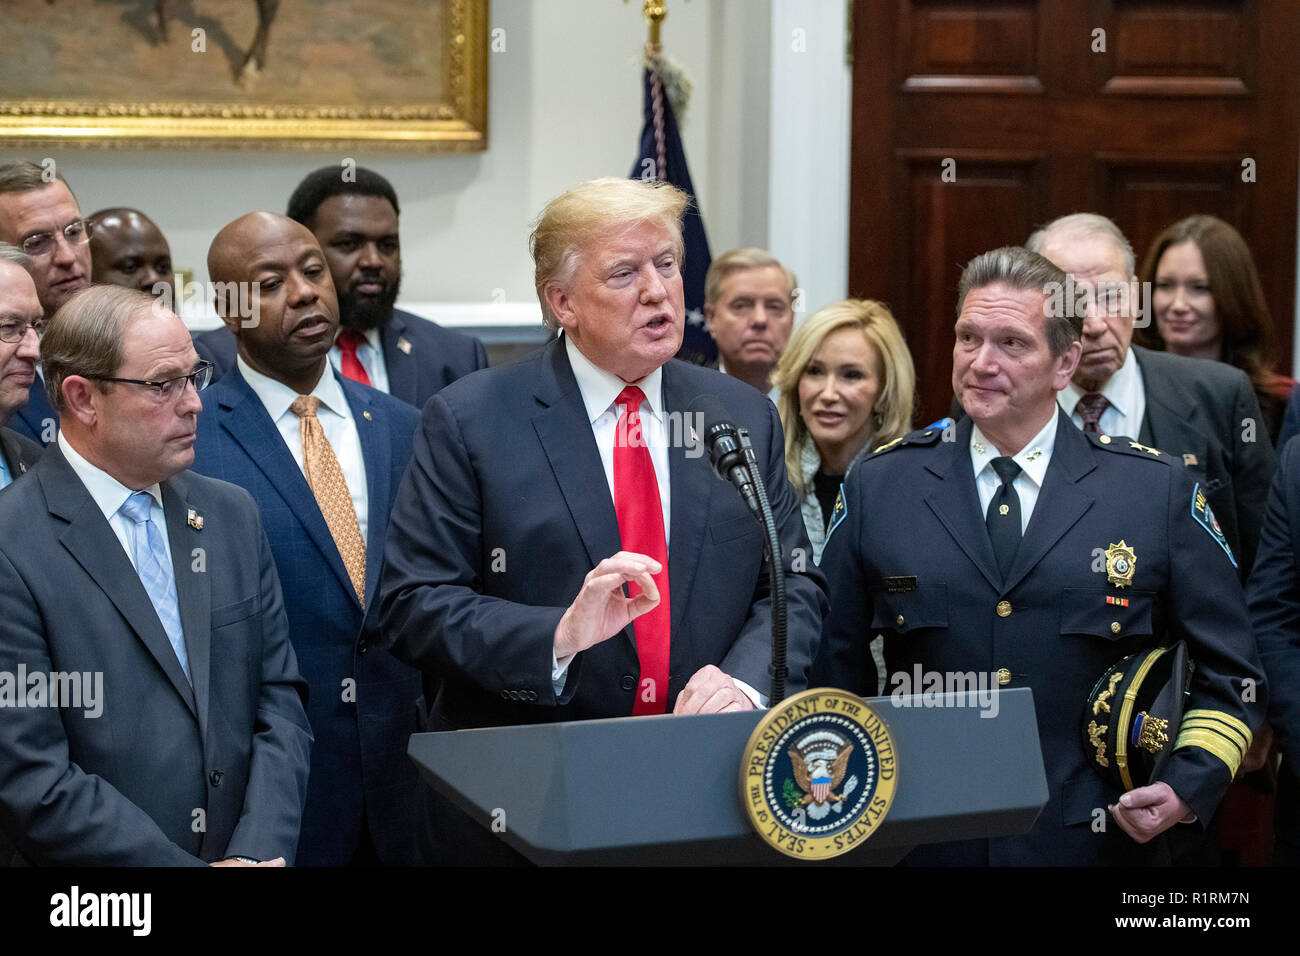 """United States President Donald J. Trump, center, announces his support of H. R. 5682, the """"First Step Act"""" in the Roosevelt Room of the White House in Washington, DC on Wednesday, November 14, 2018. According to the website congress.gov, this bill is titled """"the Formerly Incarcerated Reenter Society Transformed Safely Transitioning Every Person Act or the FIRST STEP Act."""" It enjoys bipartisan support. Standing with the President are: Chuck Canterbury, National President, Fraternal Order of Police, left, and Chief Paul Cell, President, International Association of Chiefs of Police, right. Cr Stock Photo"""